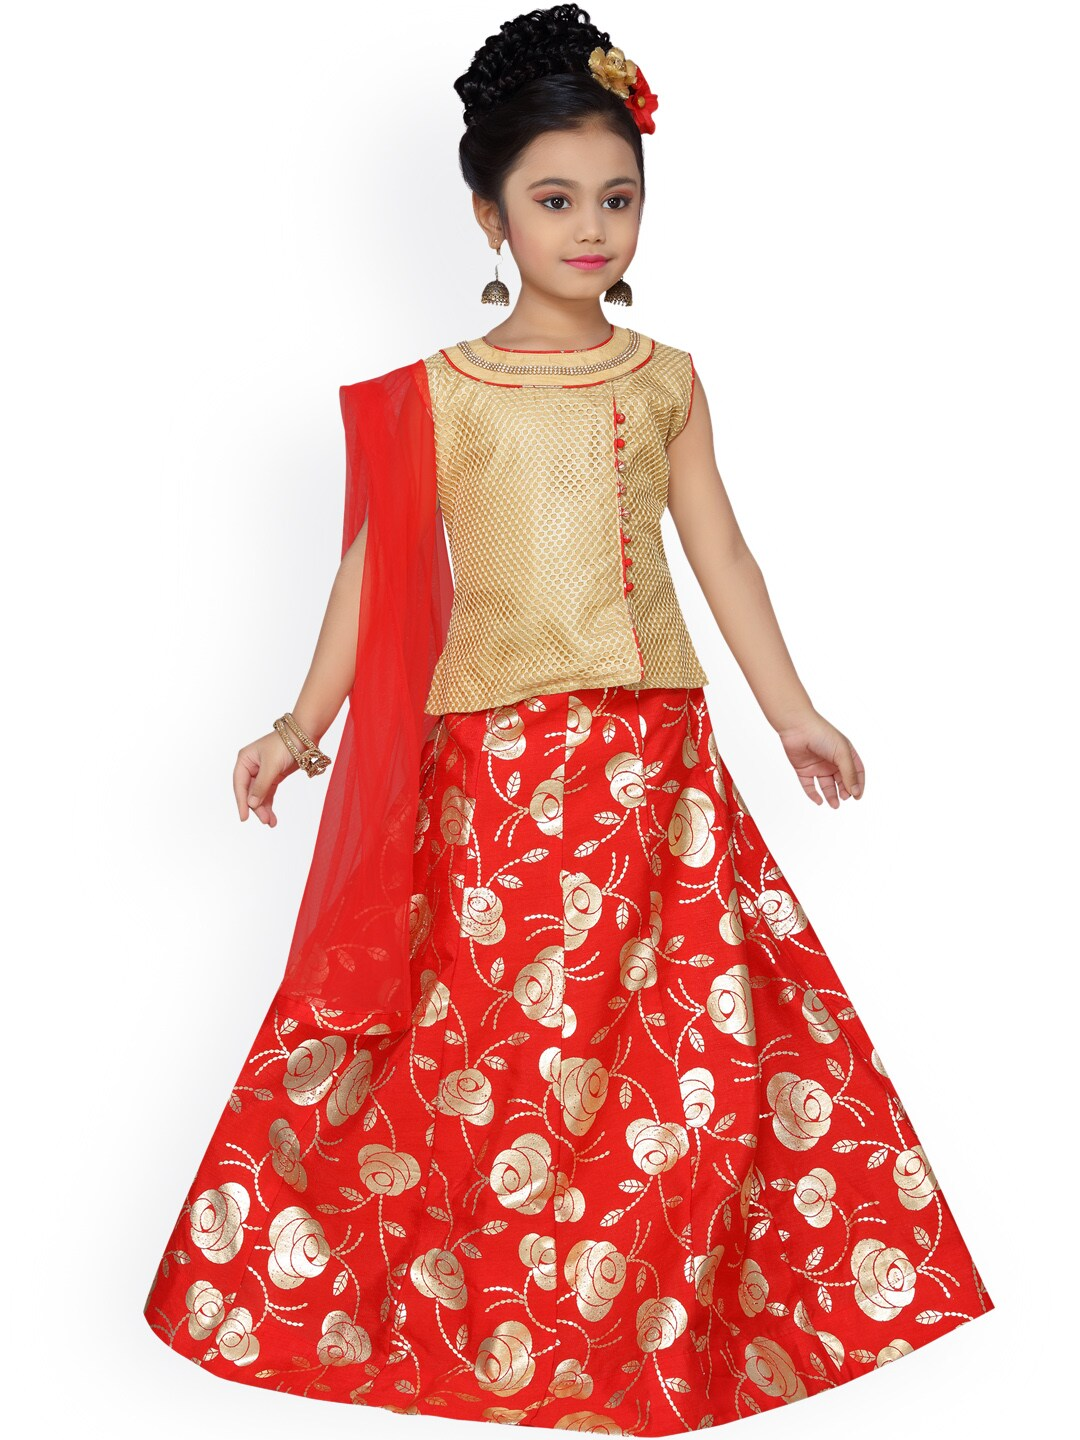 a244c26b06 Boys Girls Shrug Lehenga Choli - Buy Boys Girls Shrug Lehenga Choli online  in India